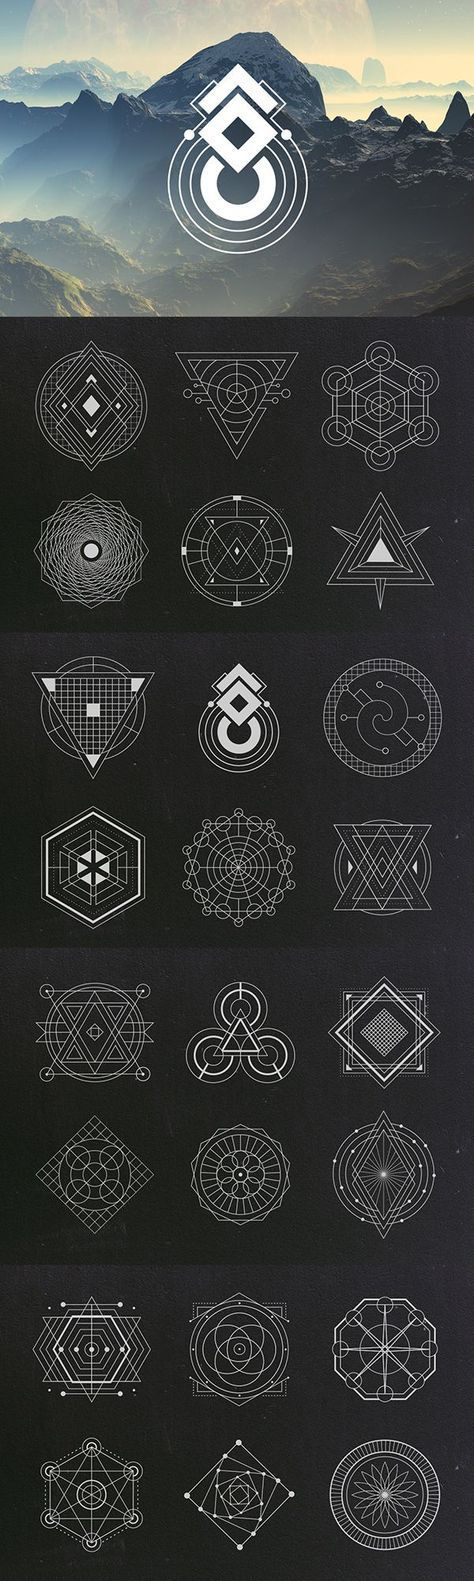 Photo of Most famous vectors of sacred geometry or Sacred Geometry …: